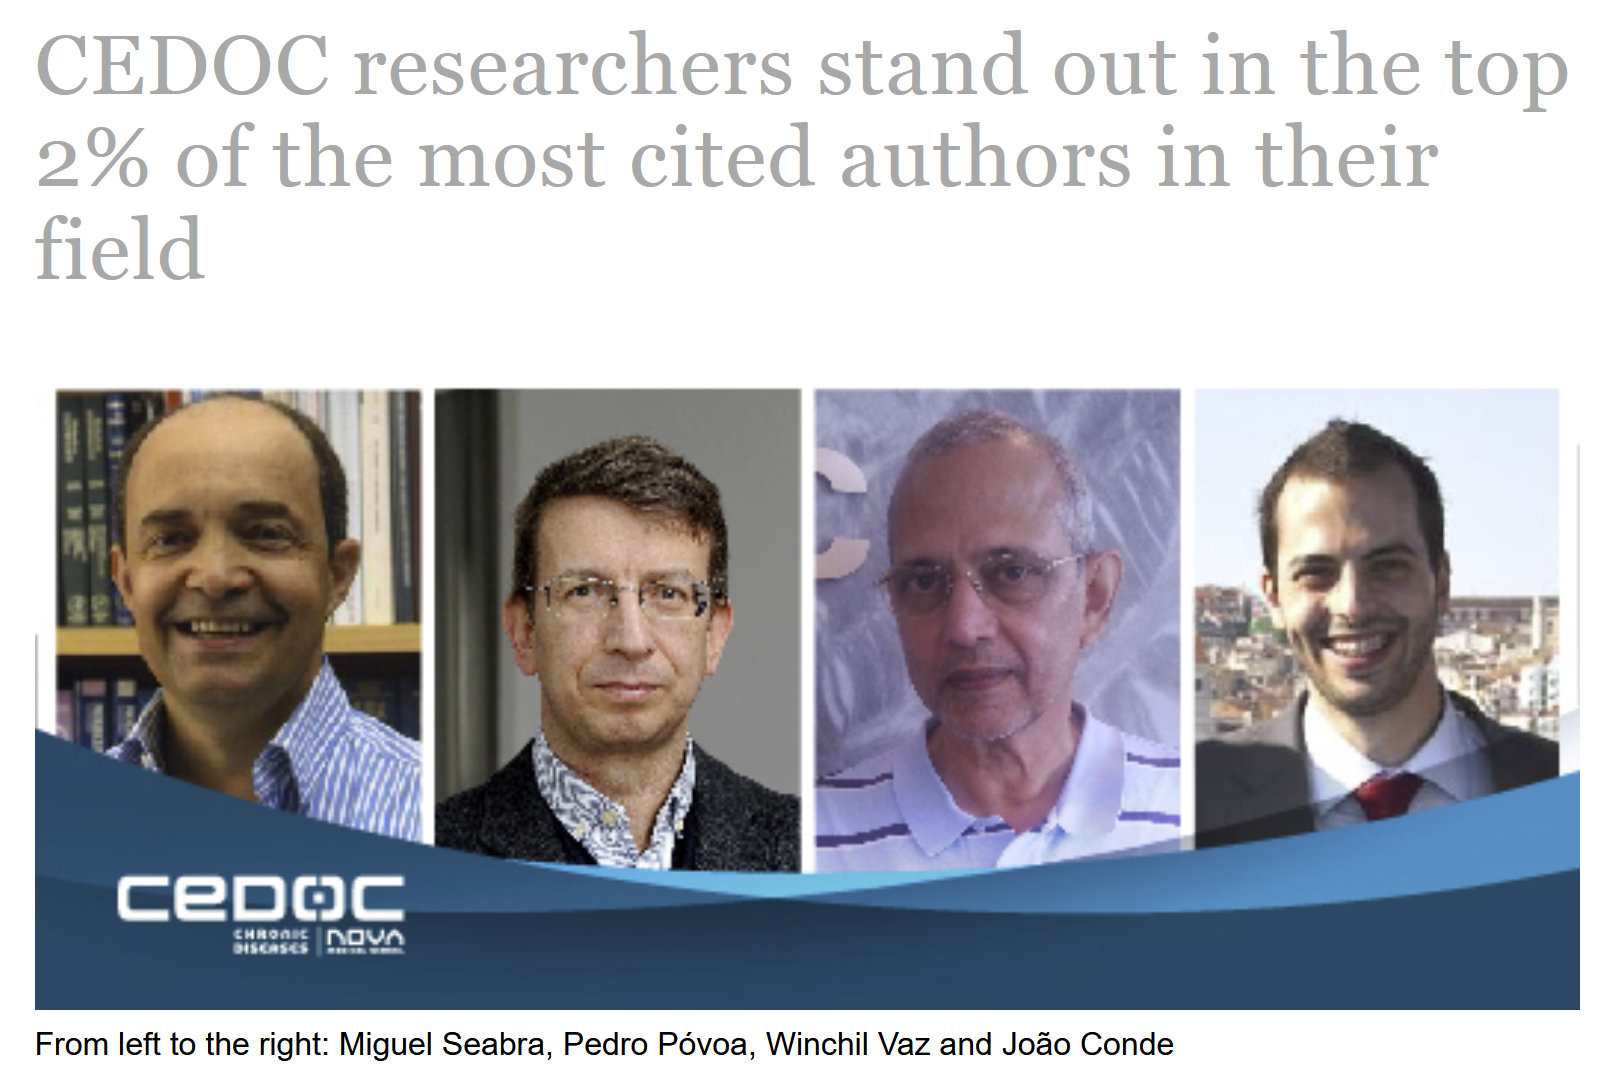 CEDOC researchers stand out in the top 2% of the most cited authors in their field